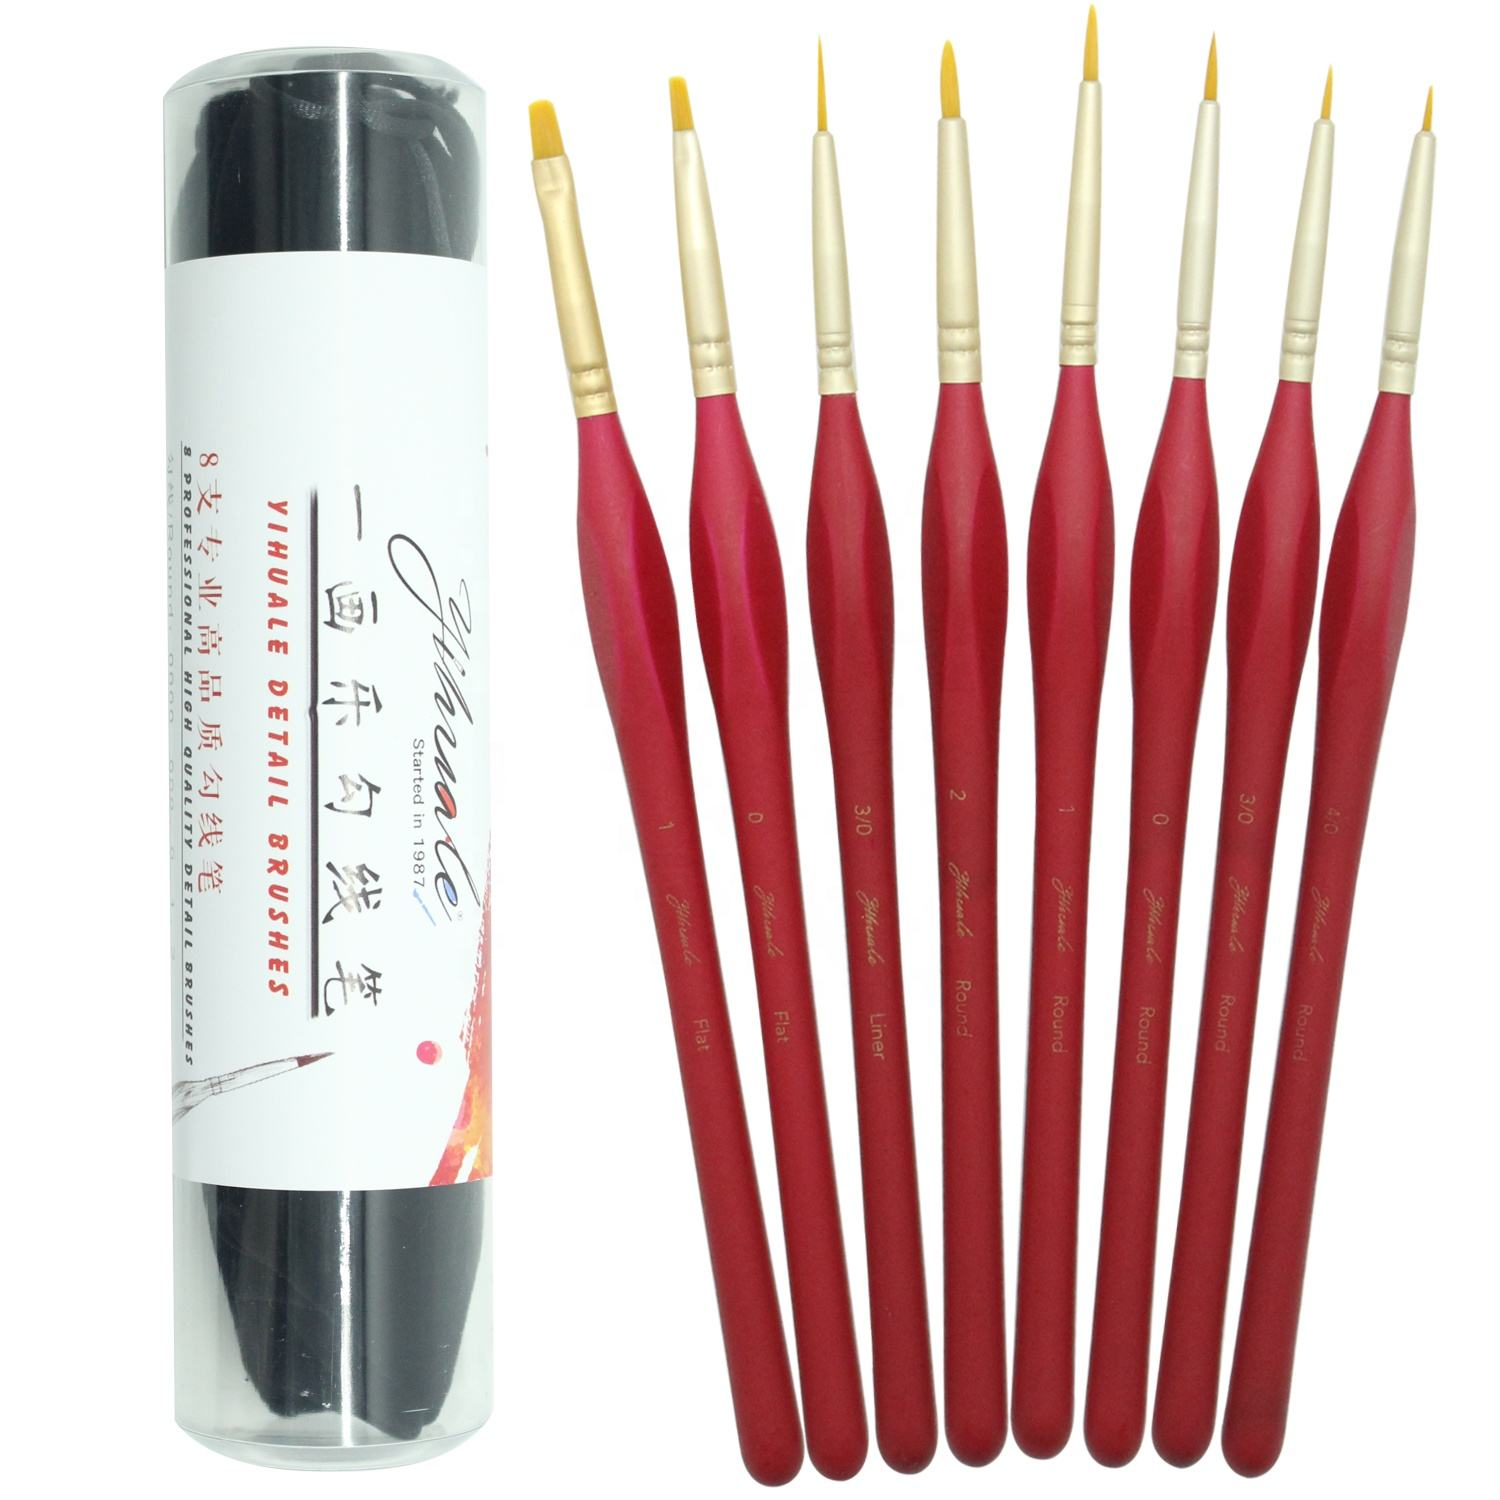 6pcs Black//Red Extra Fine Triangular Handle Detail Paint Brushes For Model Maker